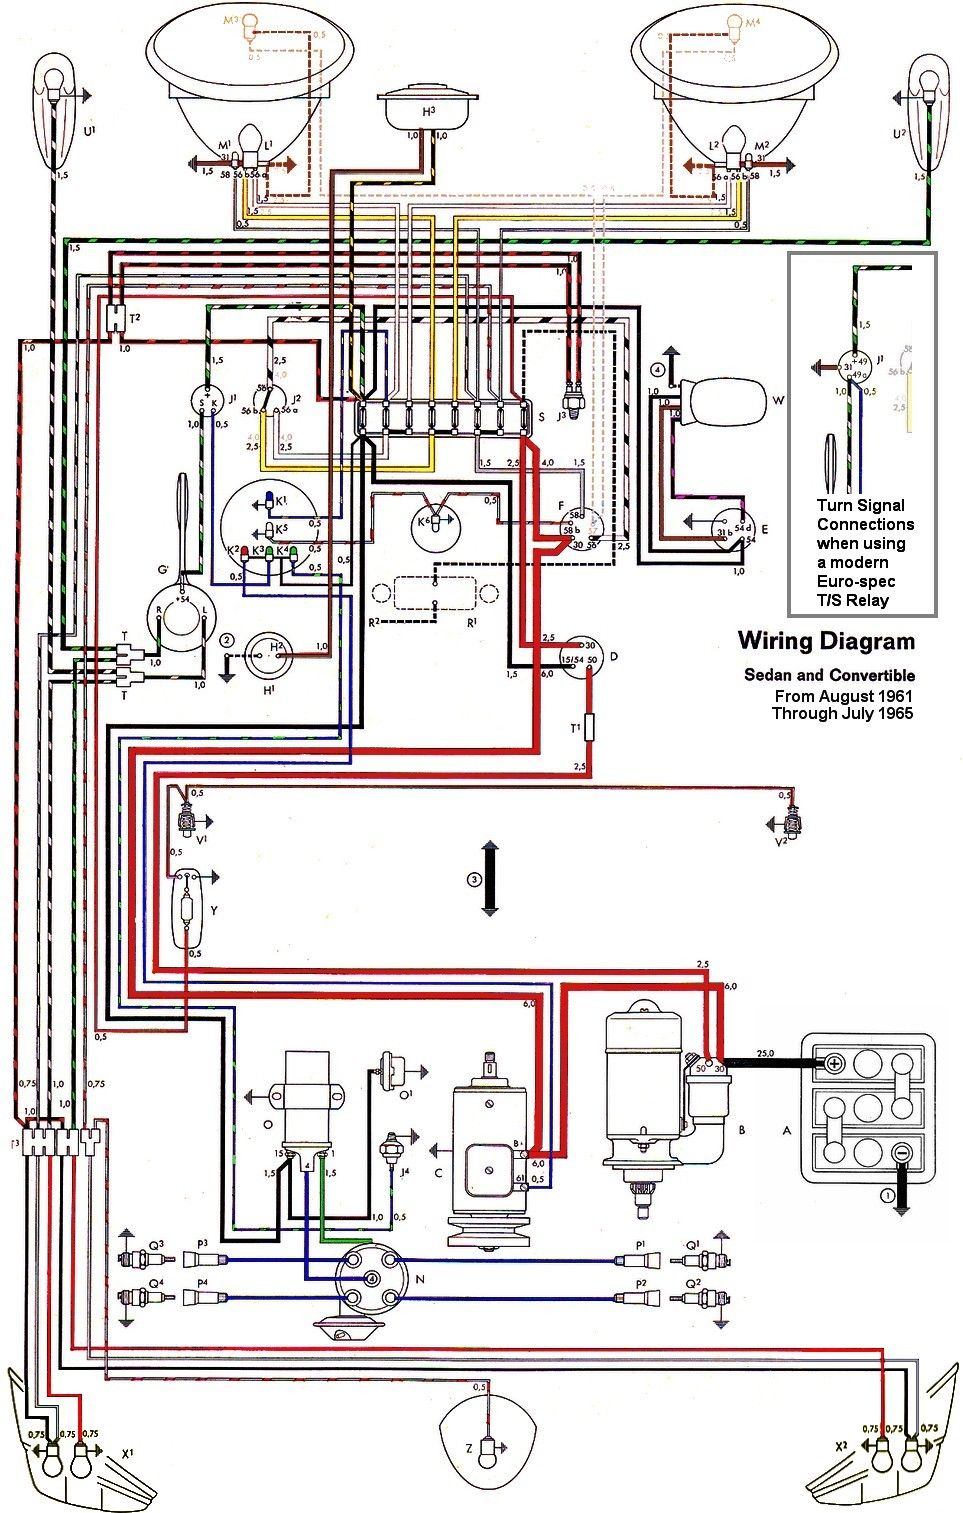 1966 corvette turn signal wiring diagram adventureworks database vw beetle sedan and convertible 1961 1965